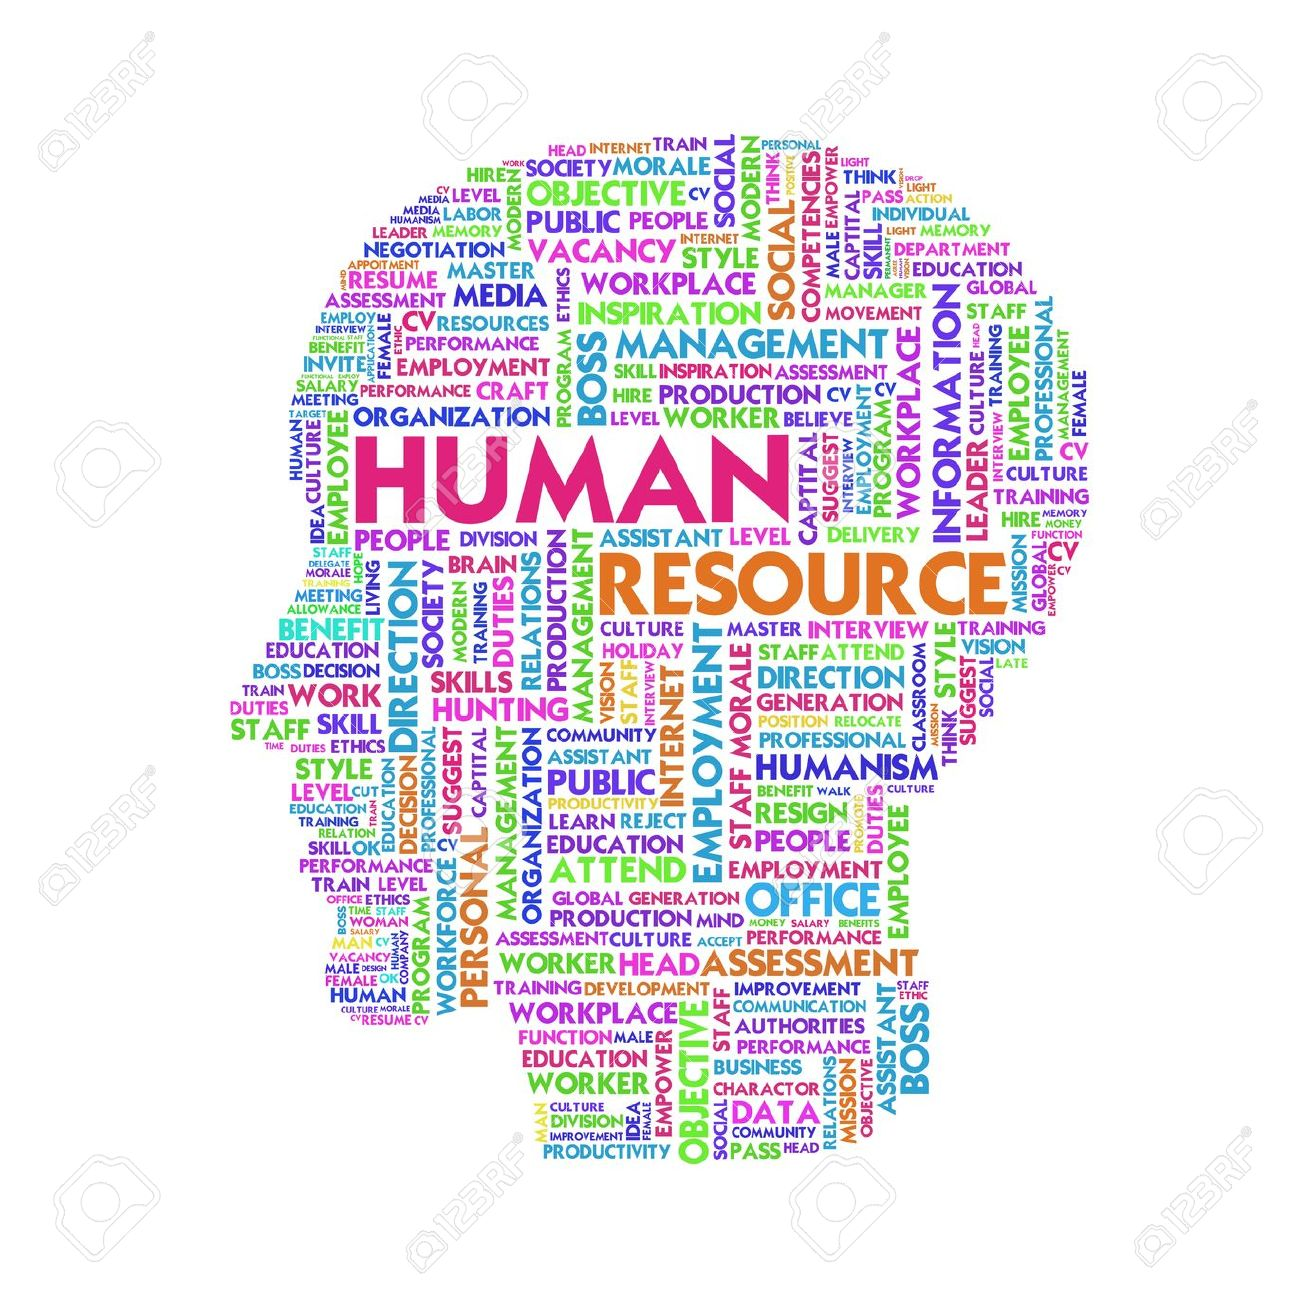 Human Resources Clipart-human resources clipart-11